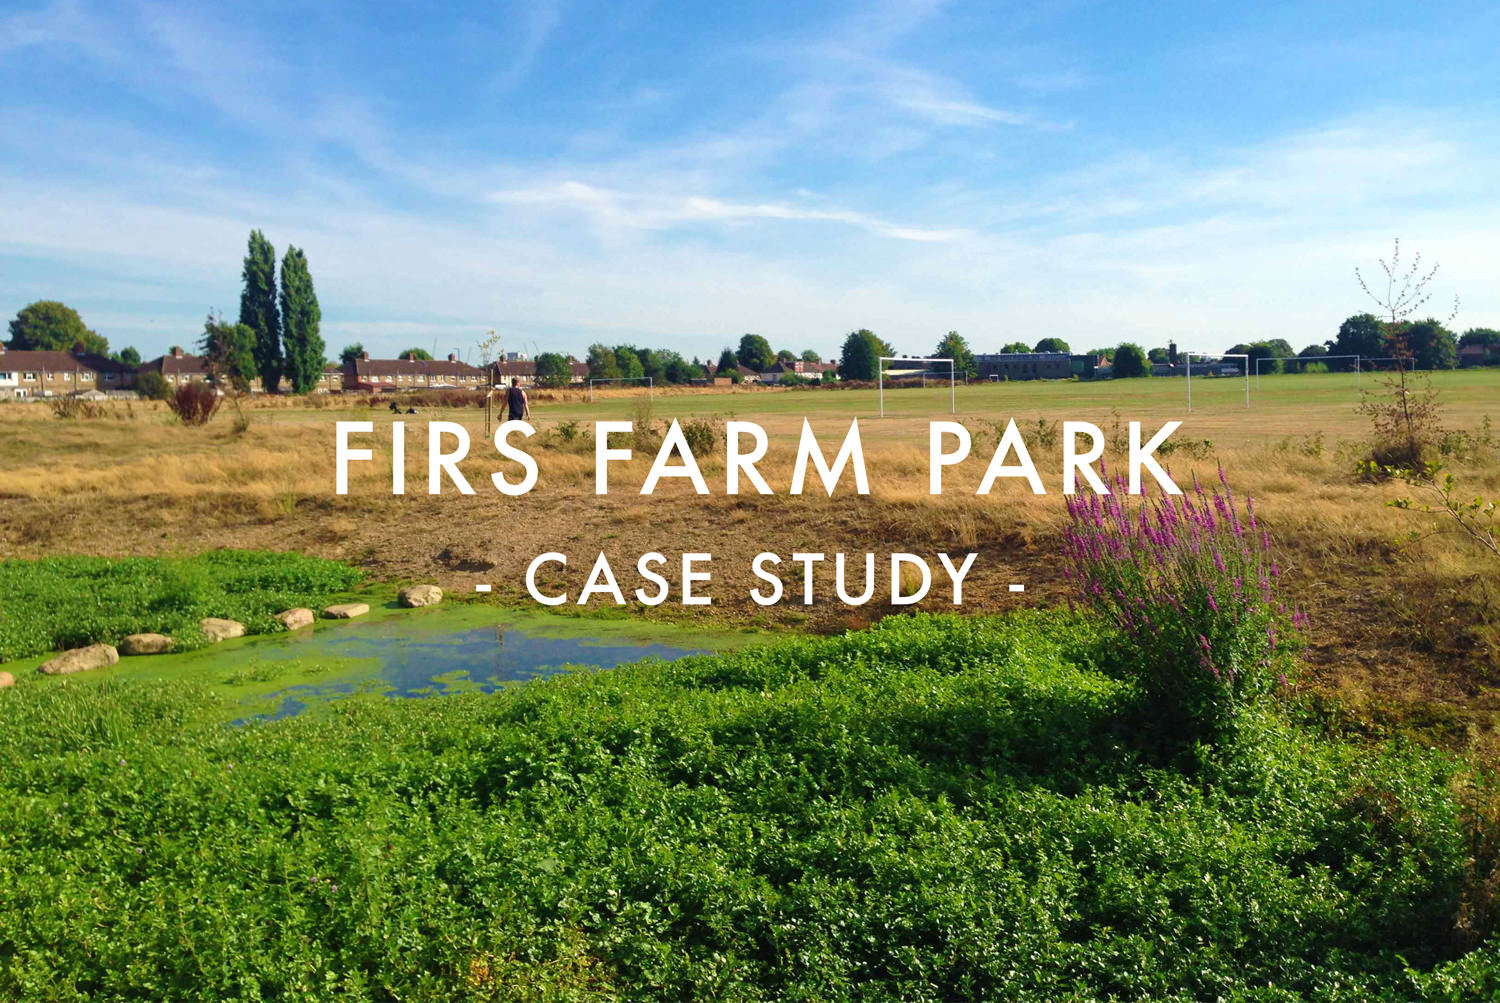 Firs Farm Park River Restoration Case Study